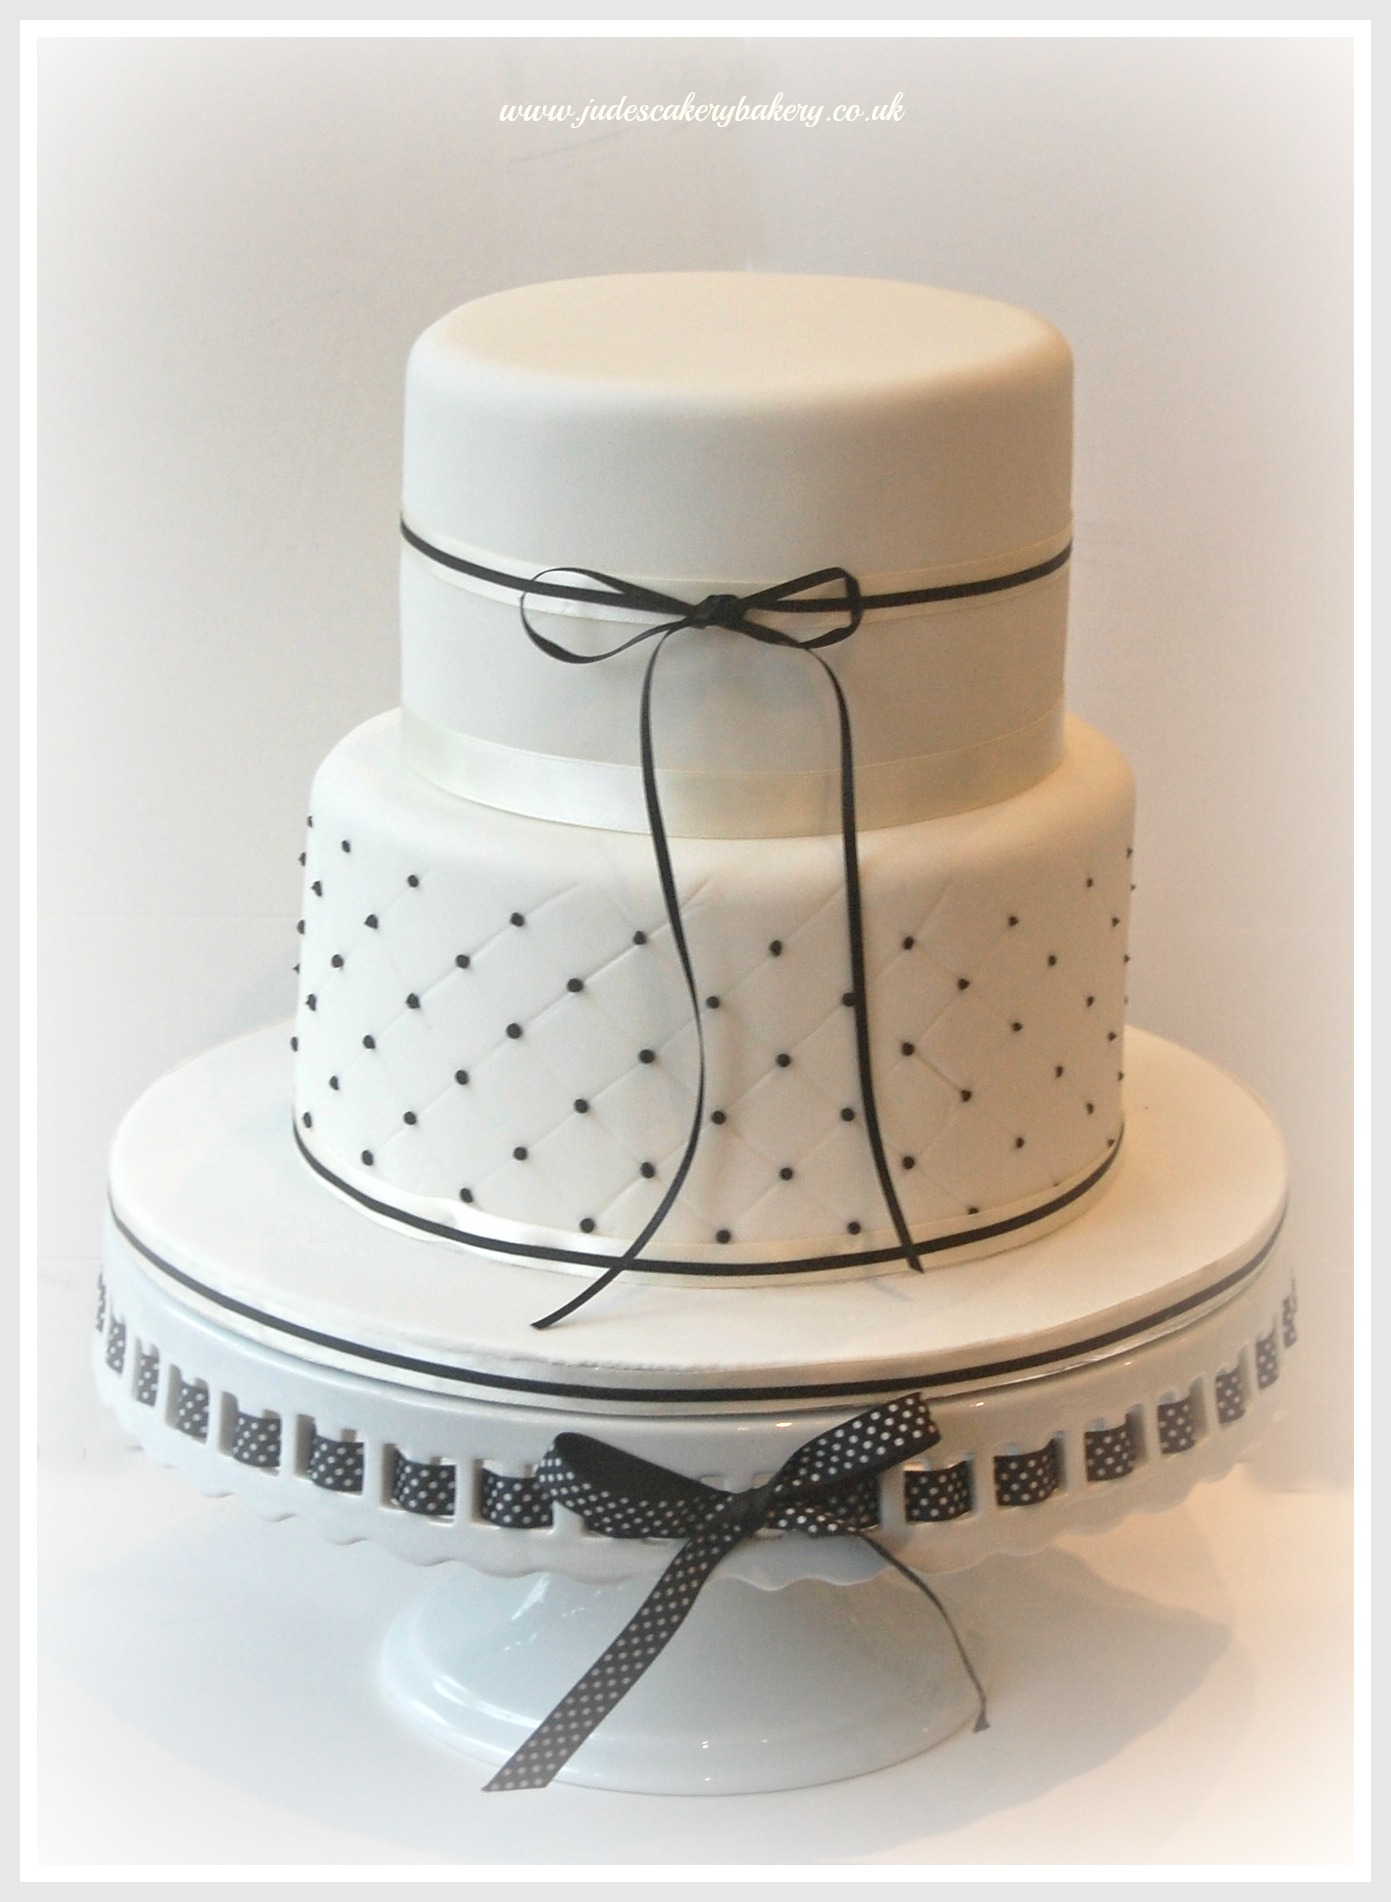 Remarkable Wal Mart Wedding Cakes Pictures Inspirations – Dievoon